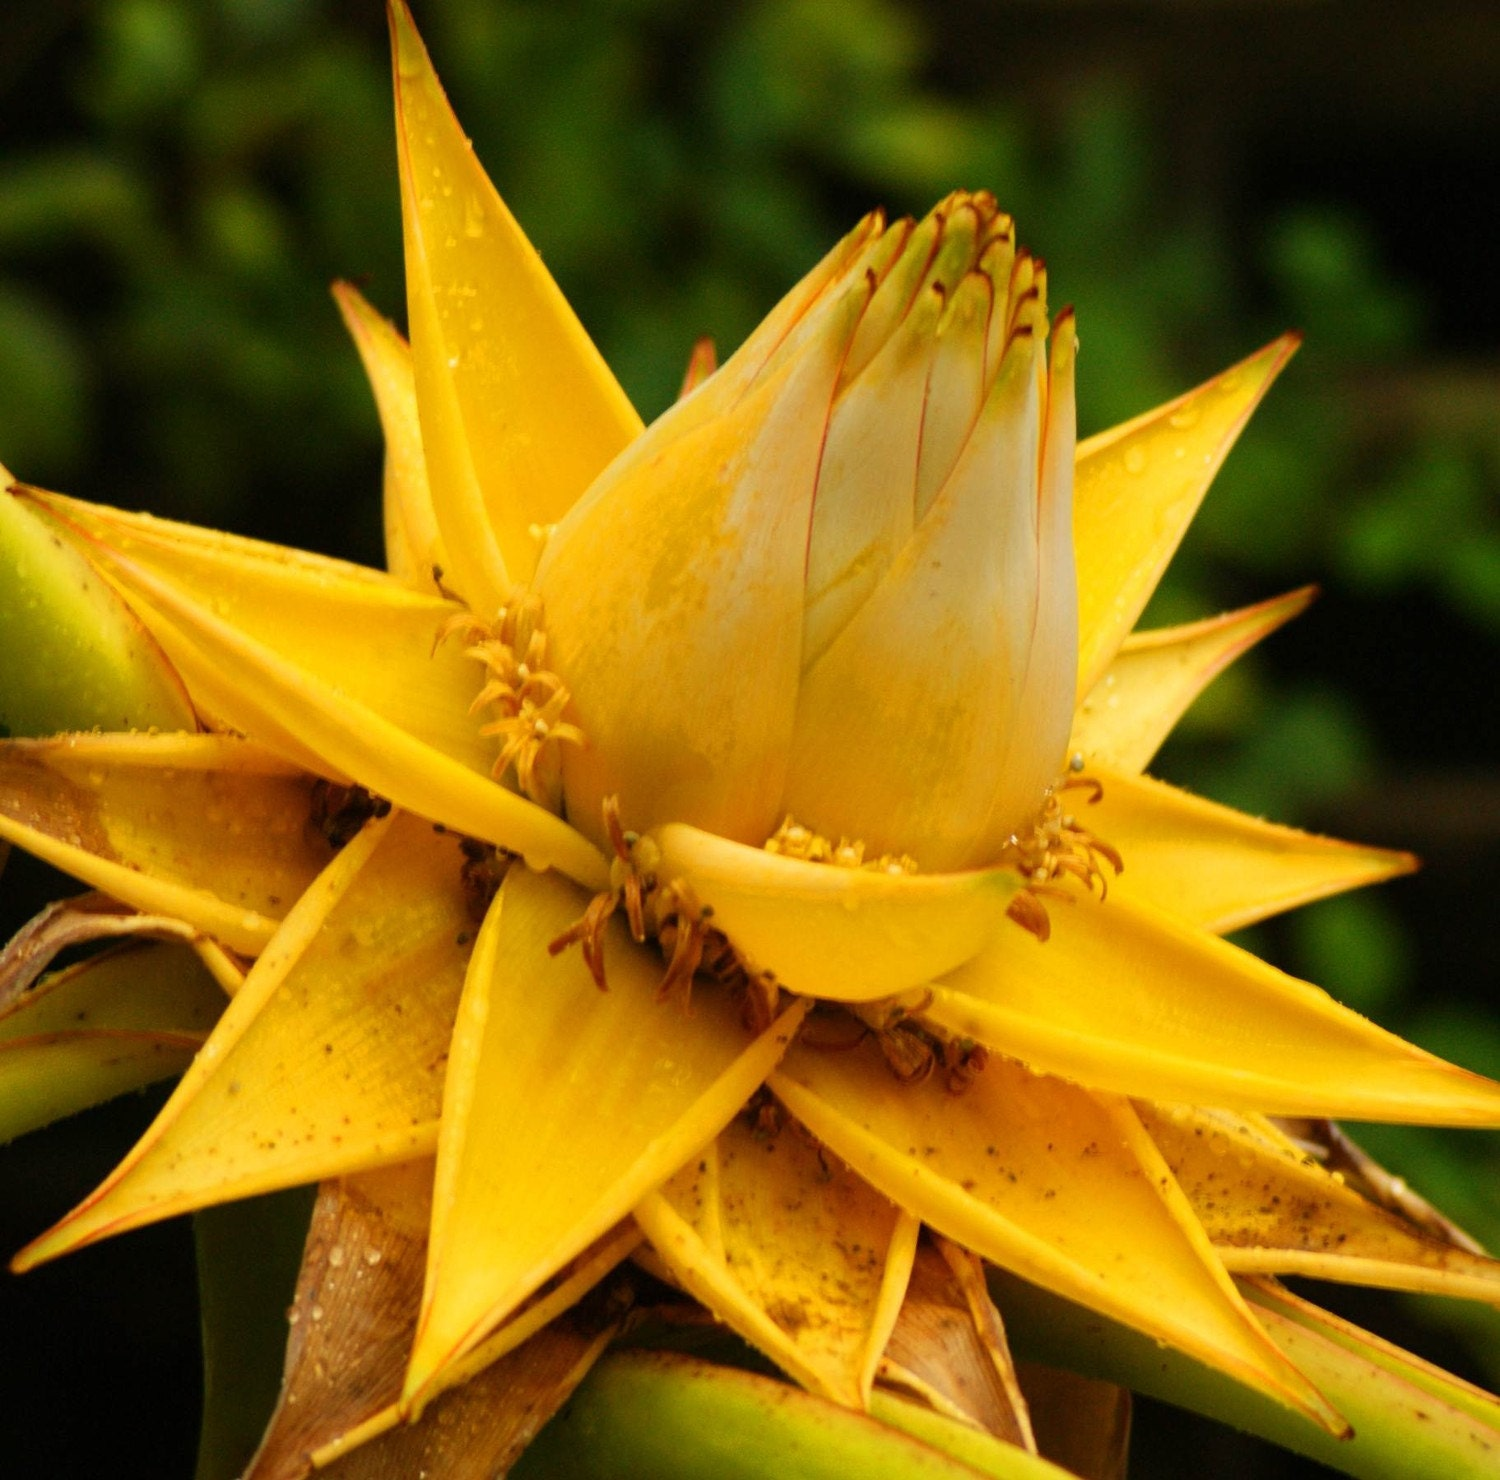 Golden Lotus Flower Art Photography 8 x 10 or 8 x 12 Nature Print Yellow Green